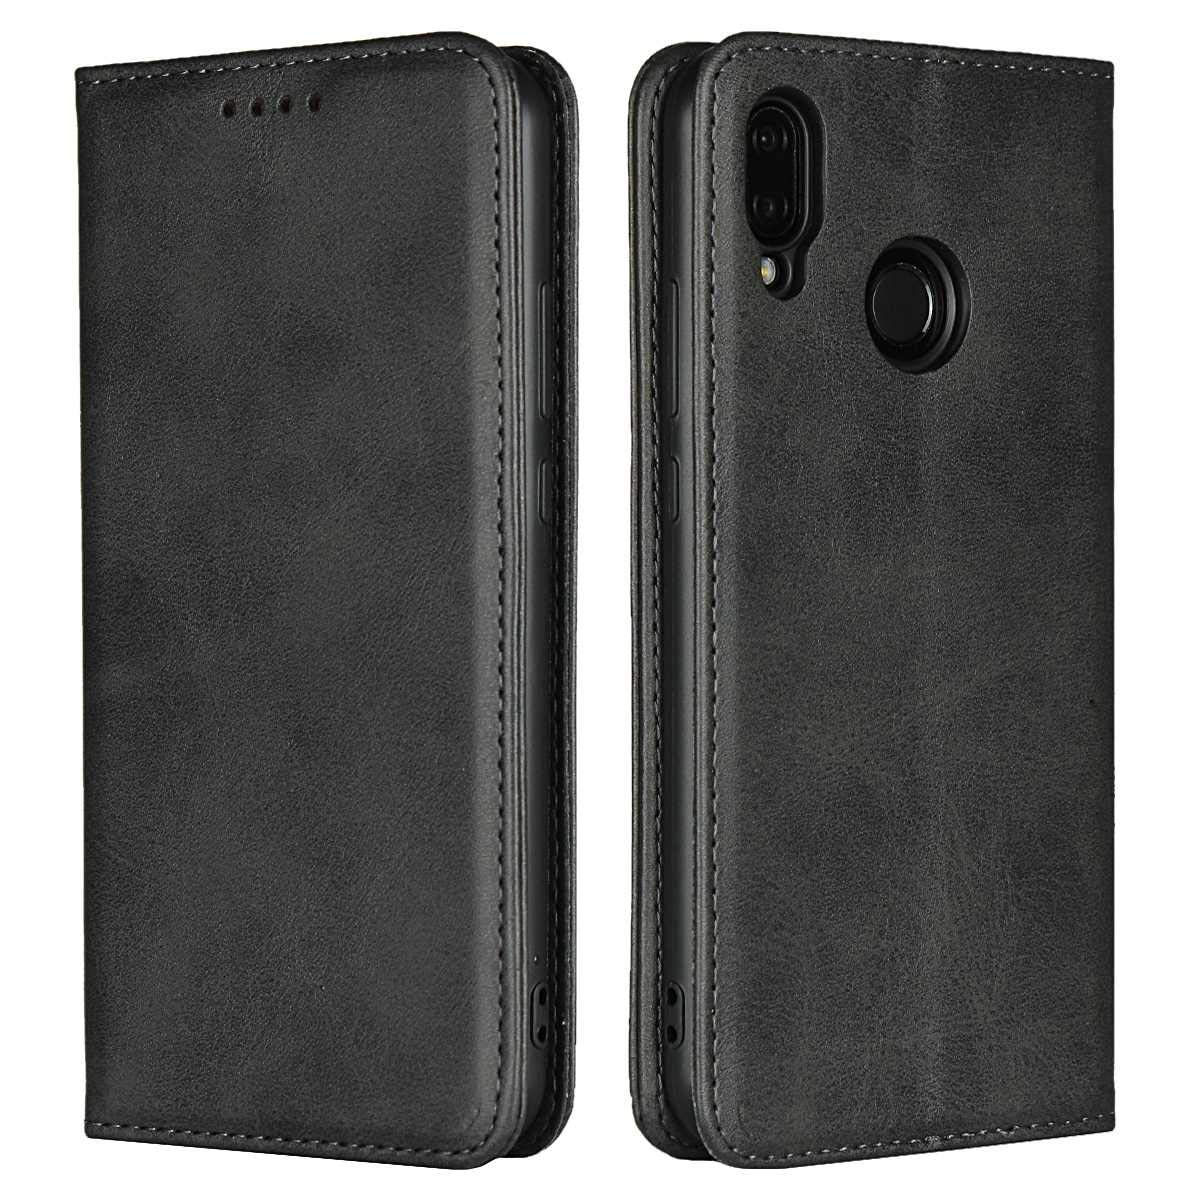 DENDICO Case for Huawei P20, Classic Leather Wallet Case Flip Notebook Style Cover with Magnetic Closure, Card Holders, Stand Feature - Black FFDDC22HWP20-0401